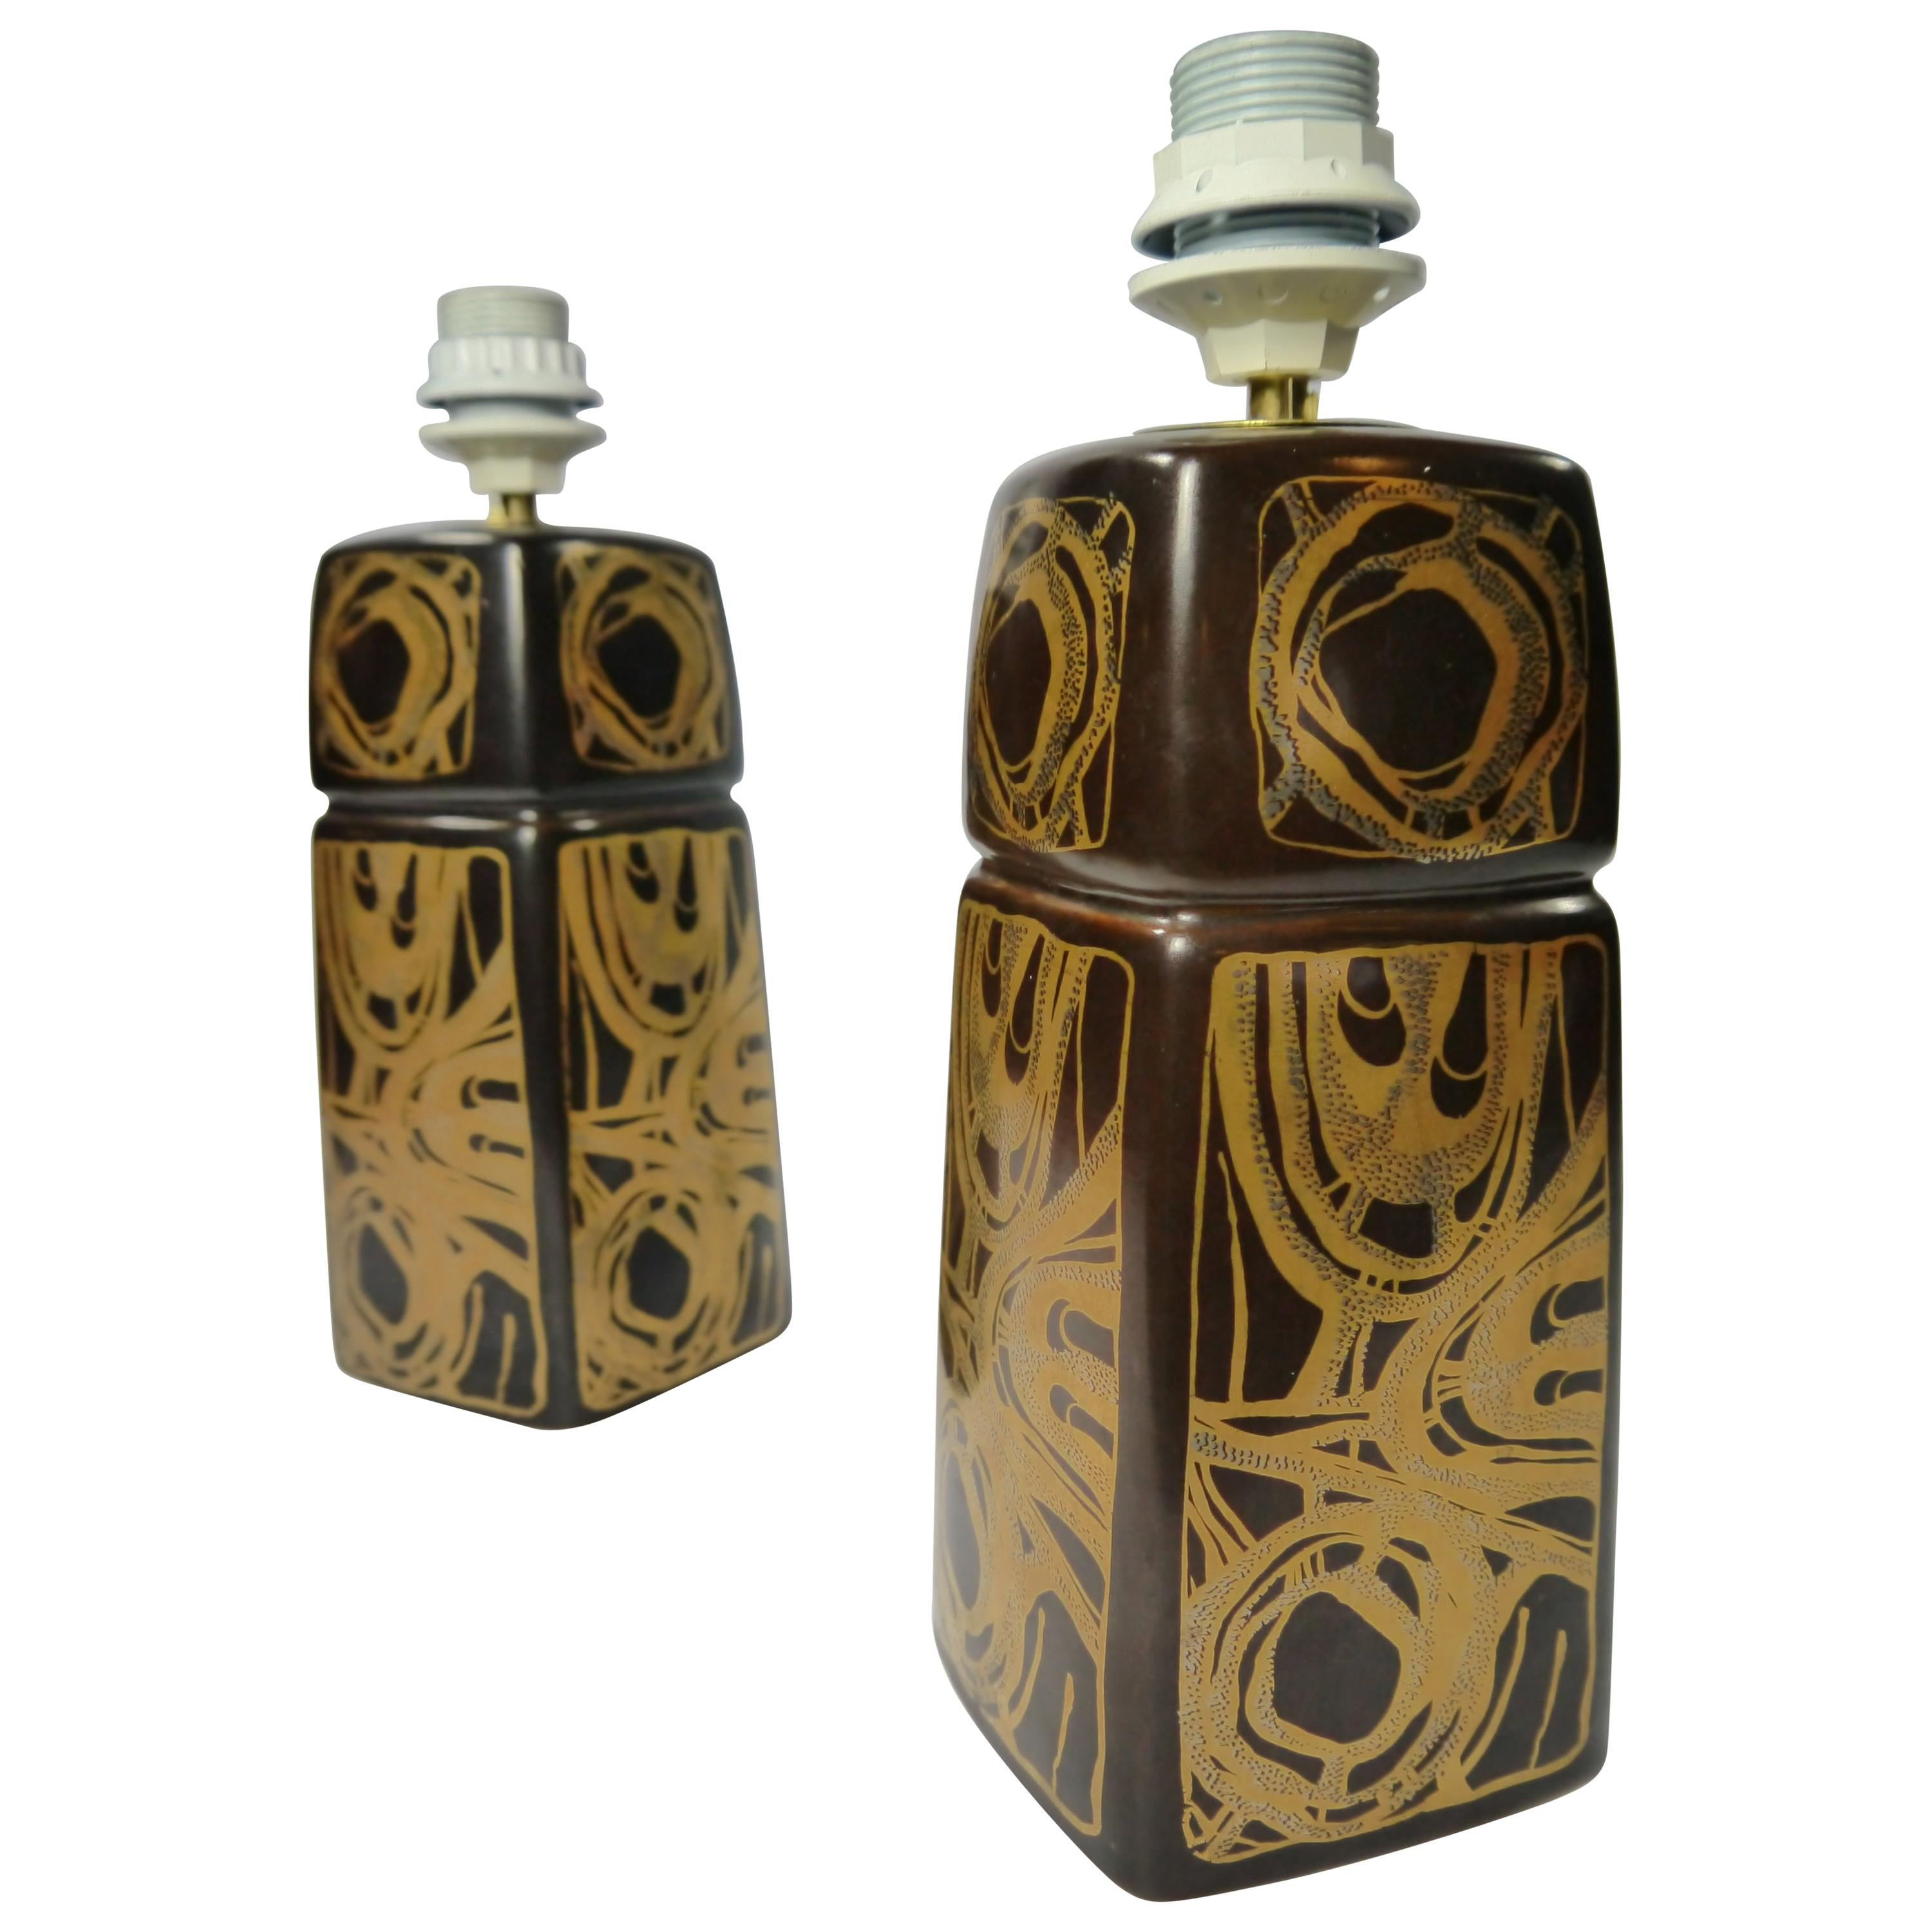 Pair of Brown / Golden Ceramic Lamps by Søholm, Denmark, 1960s